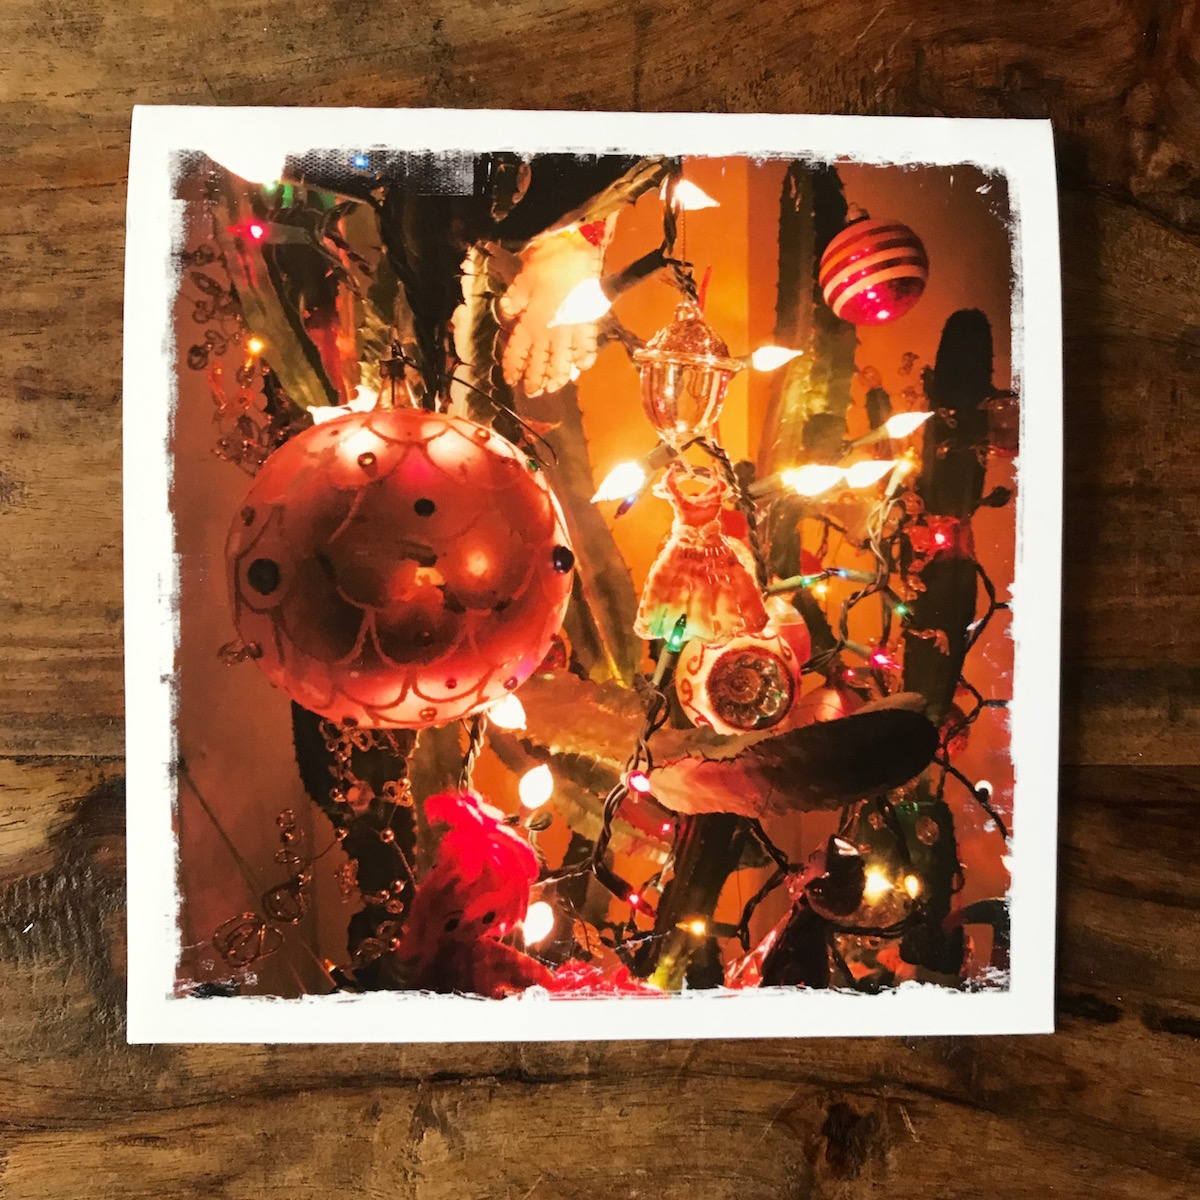 Vintage Ornaments on Cactus Note Card, photo by Barbara Sinclair